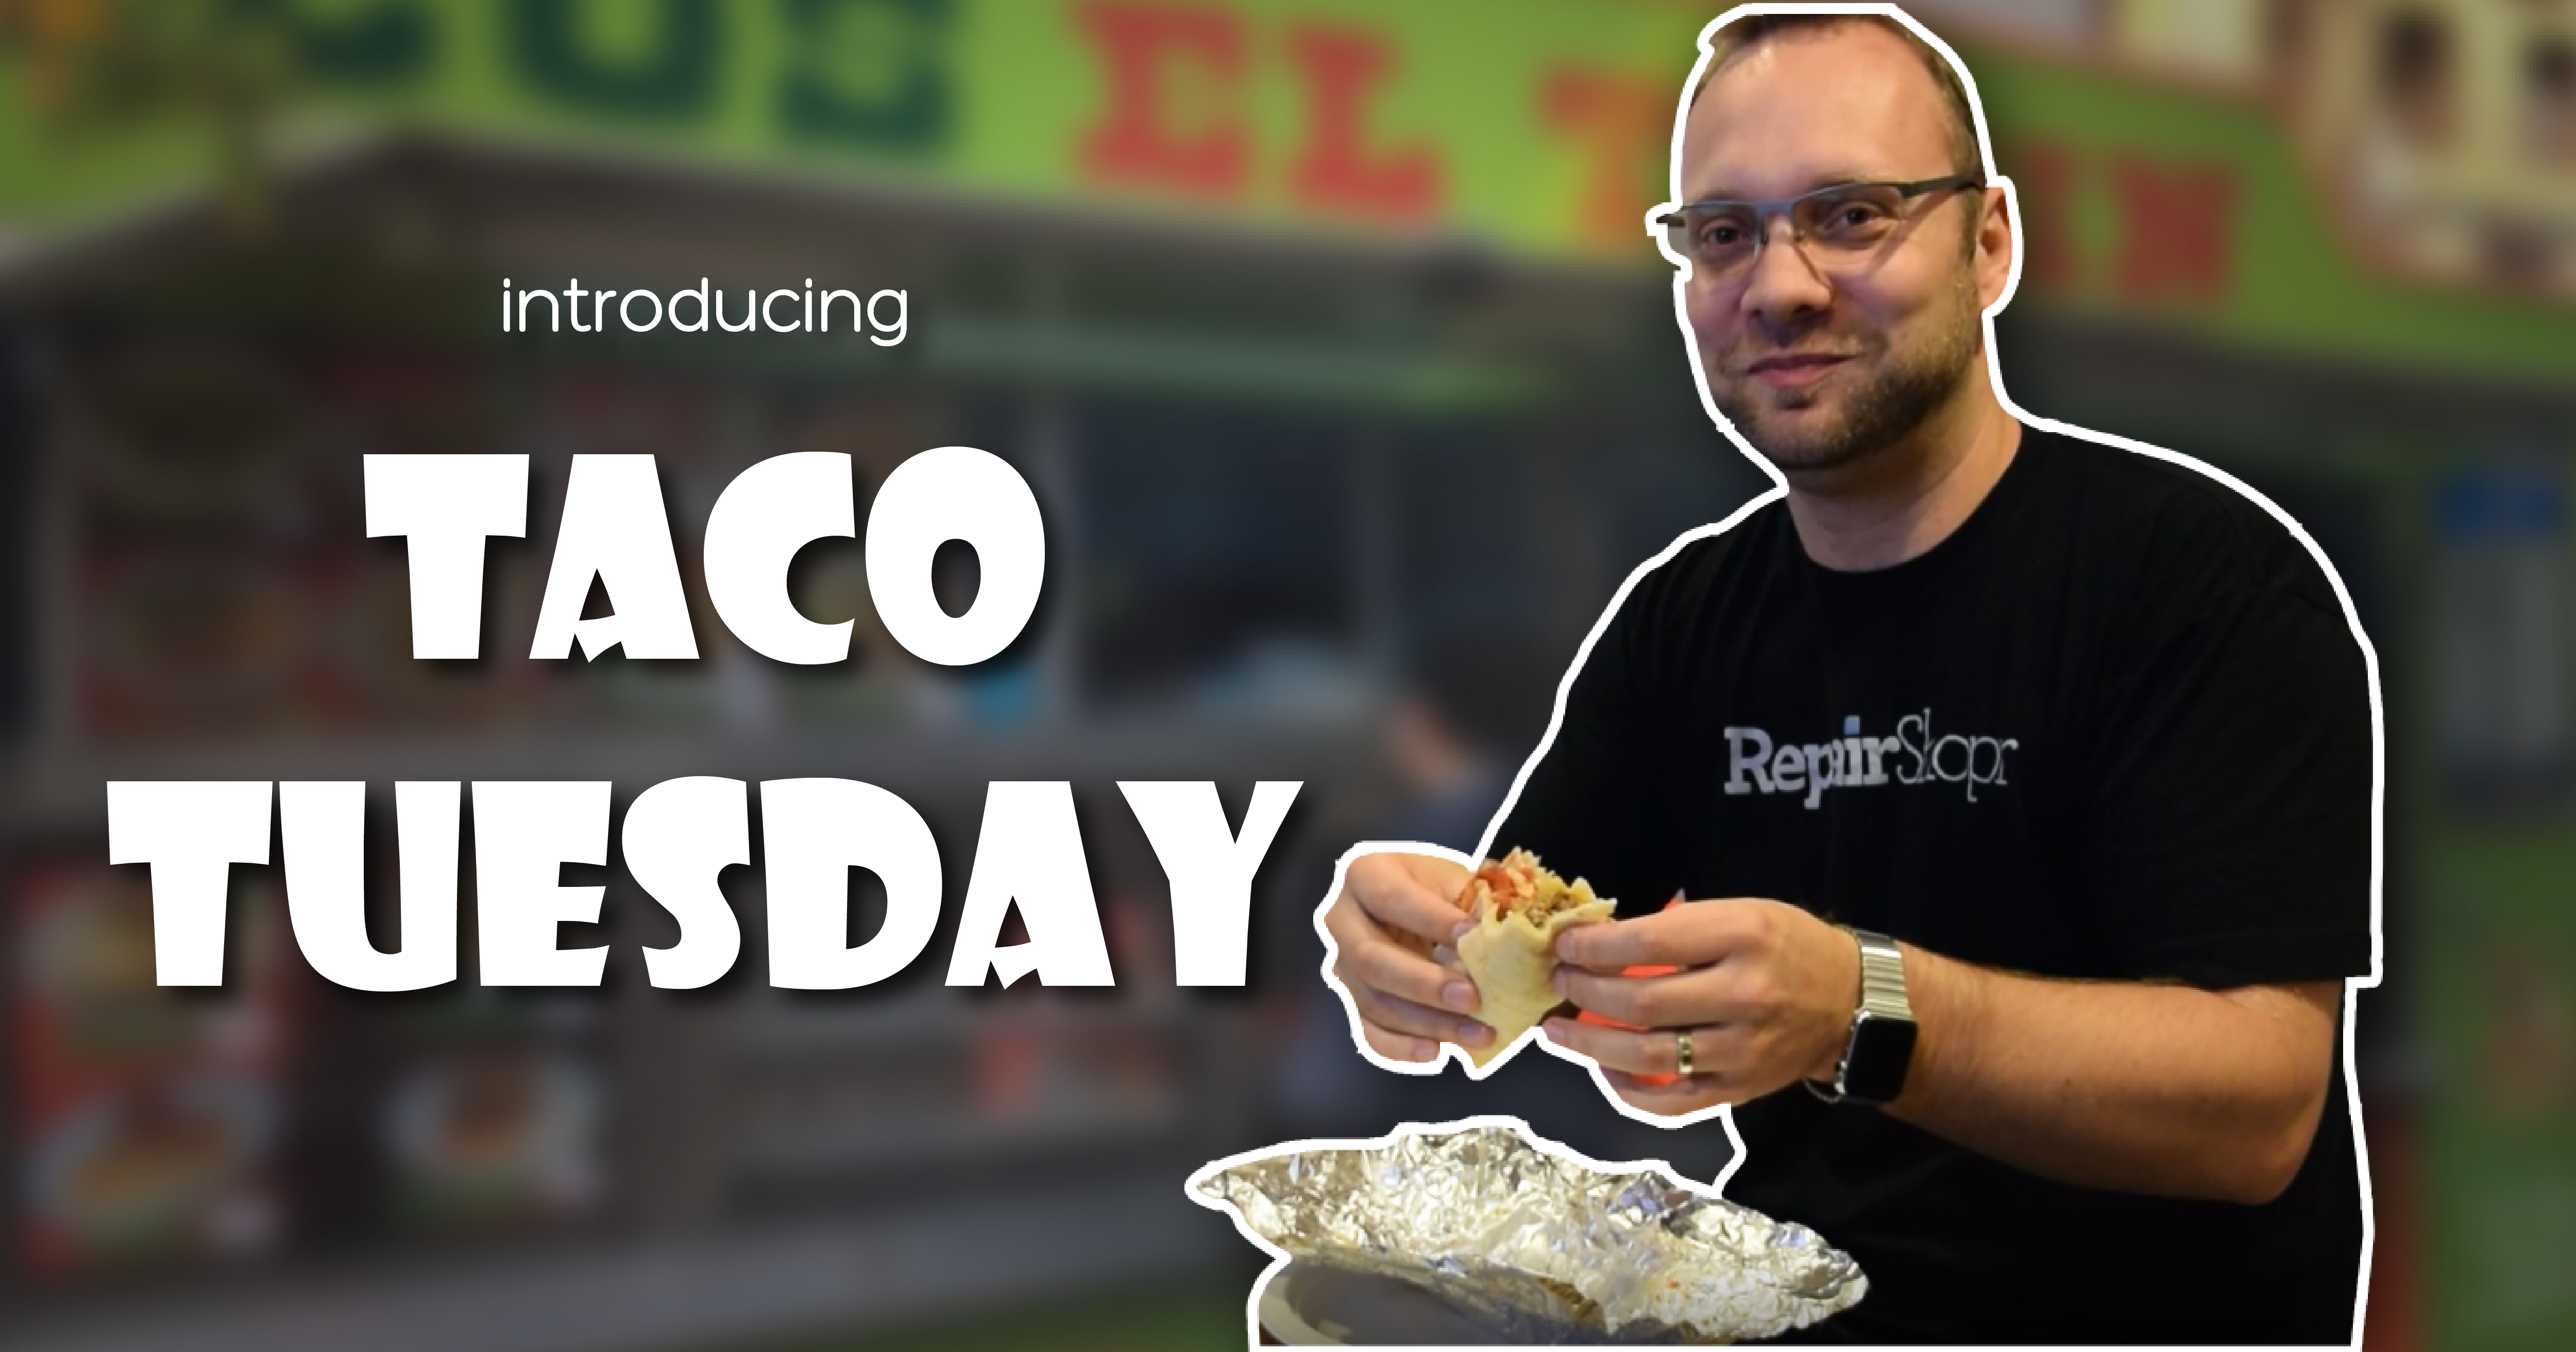 Taco Tuesday by RepairShopr